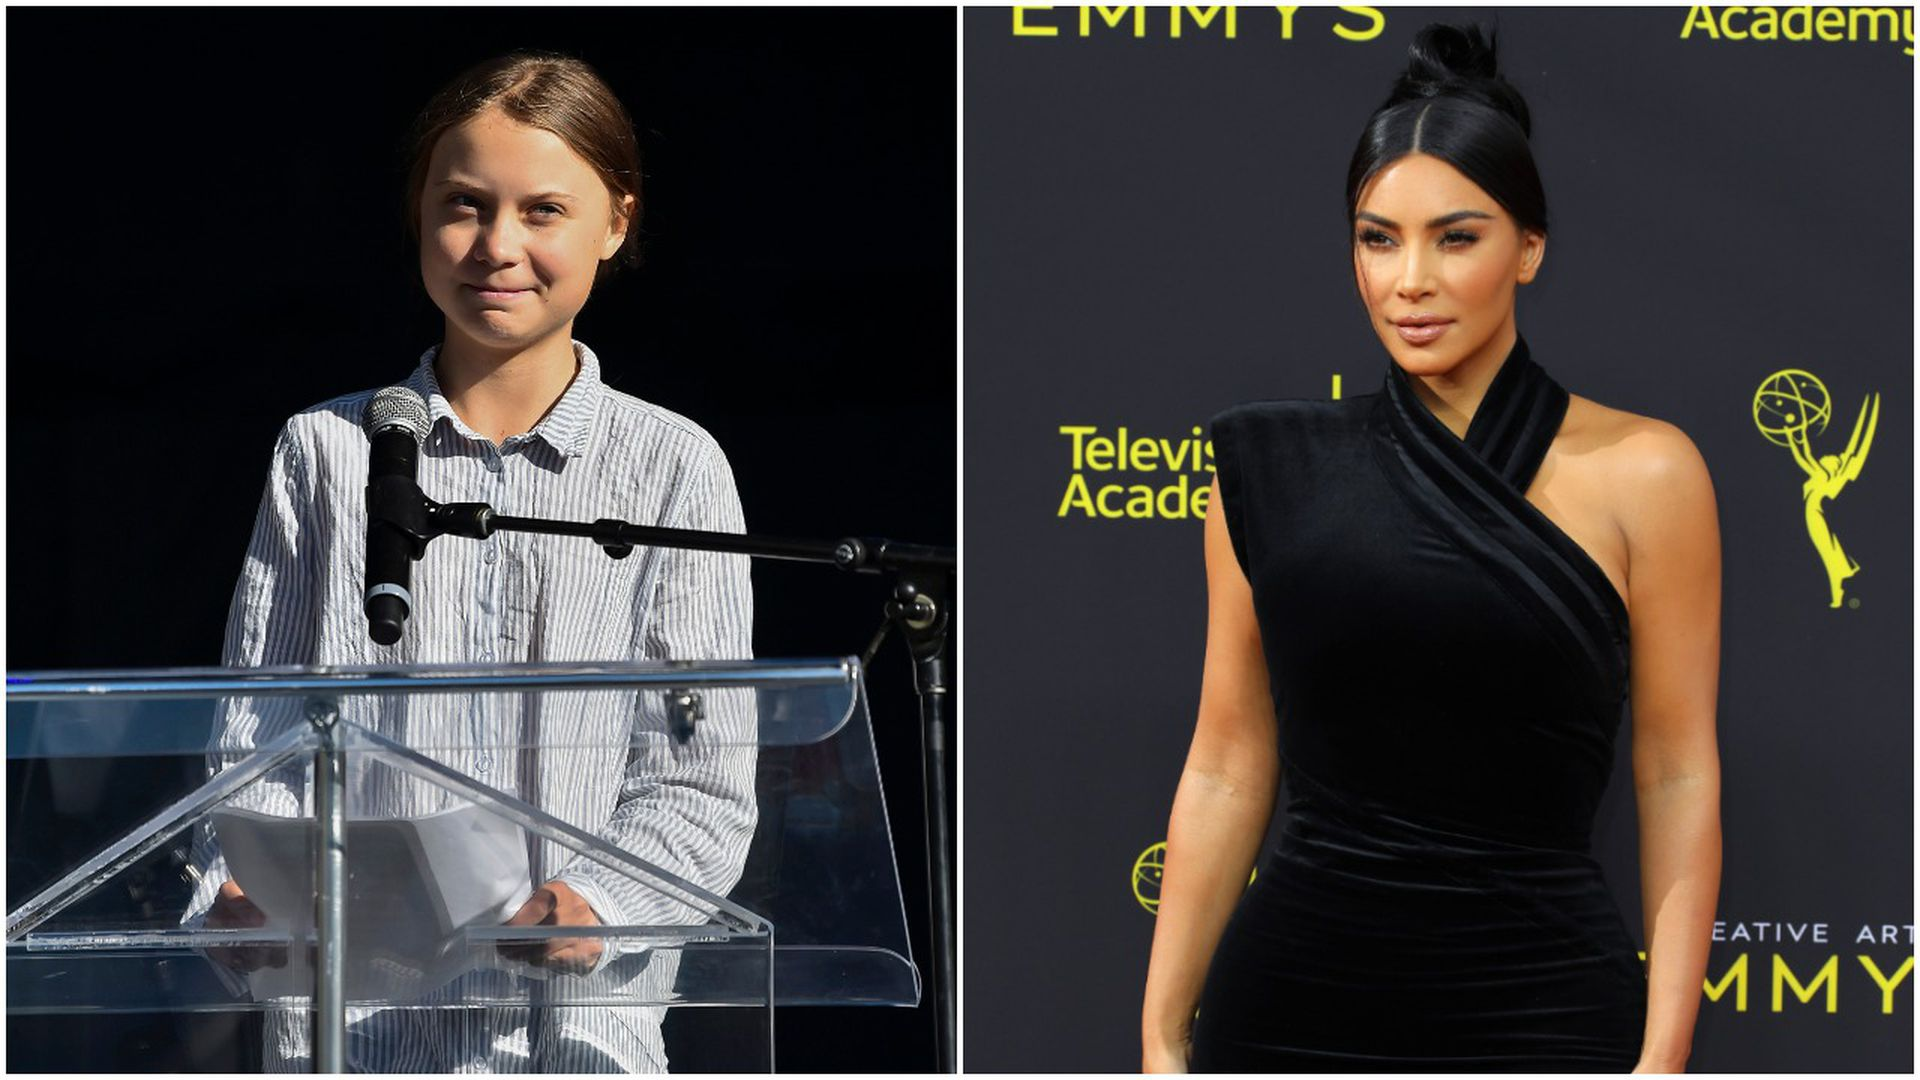 Teen climate activist Greta Thunberg and reality TV star Kim Kardashian